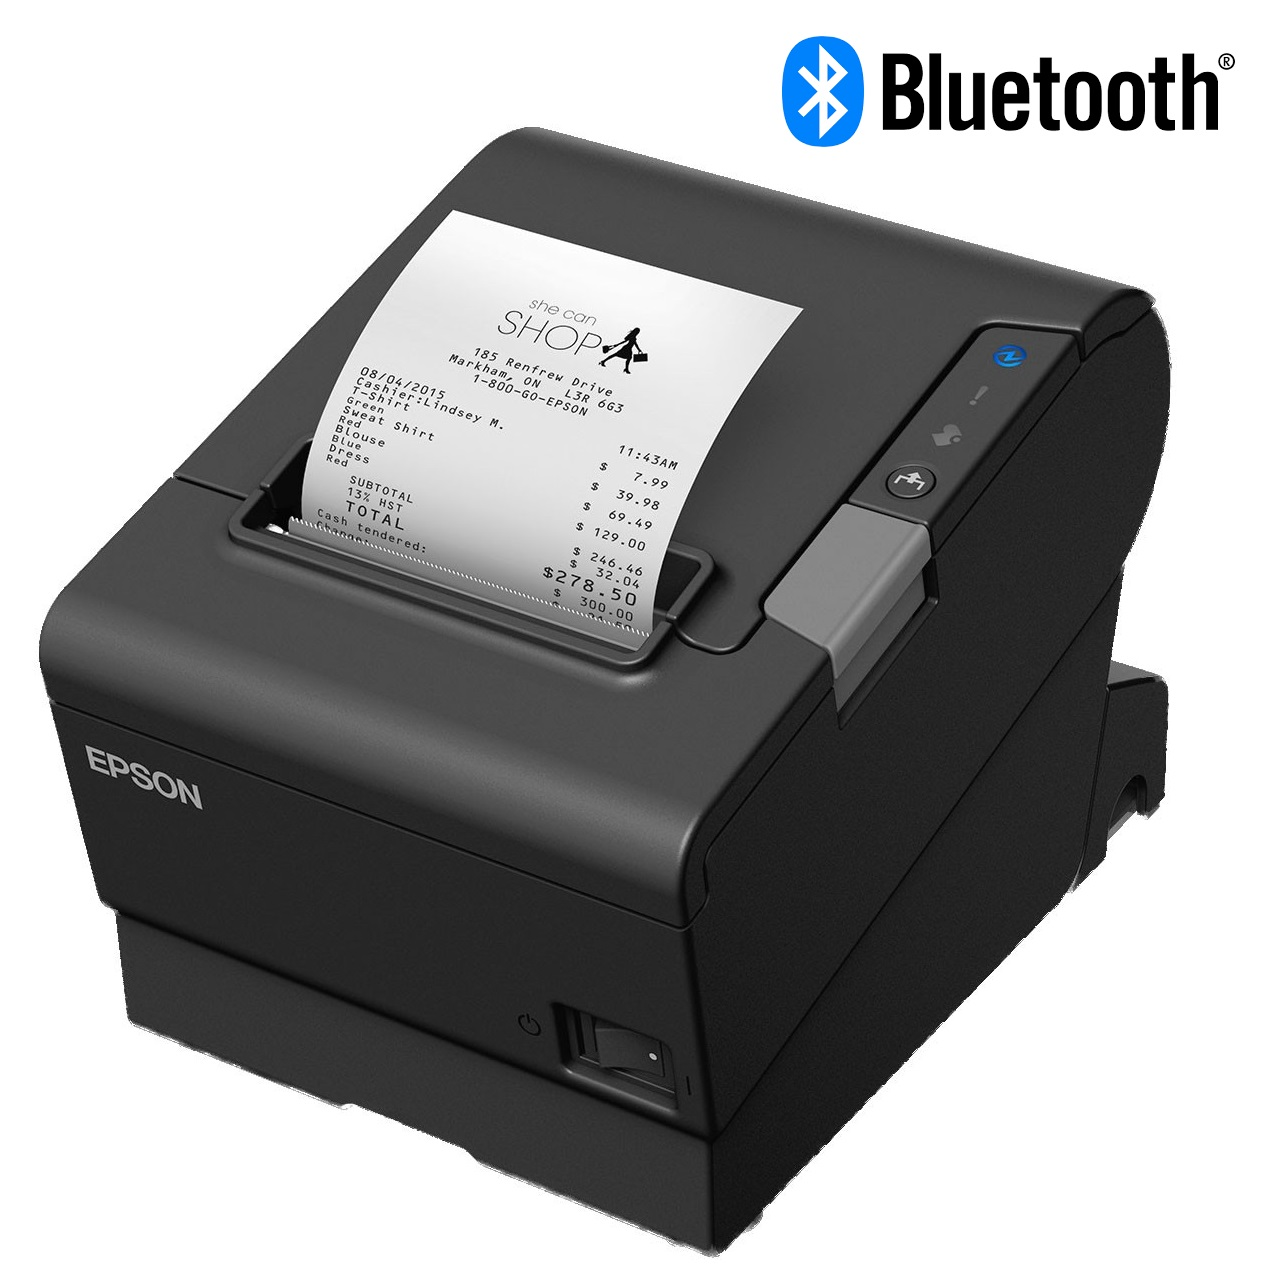 View Epson TM-T88VI Bluetooth Receipt Printer